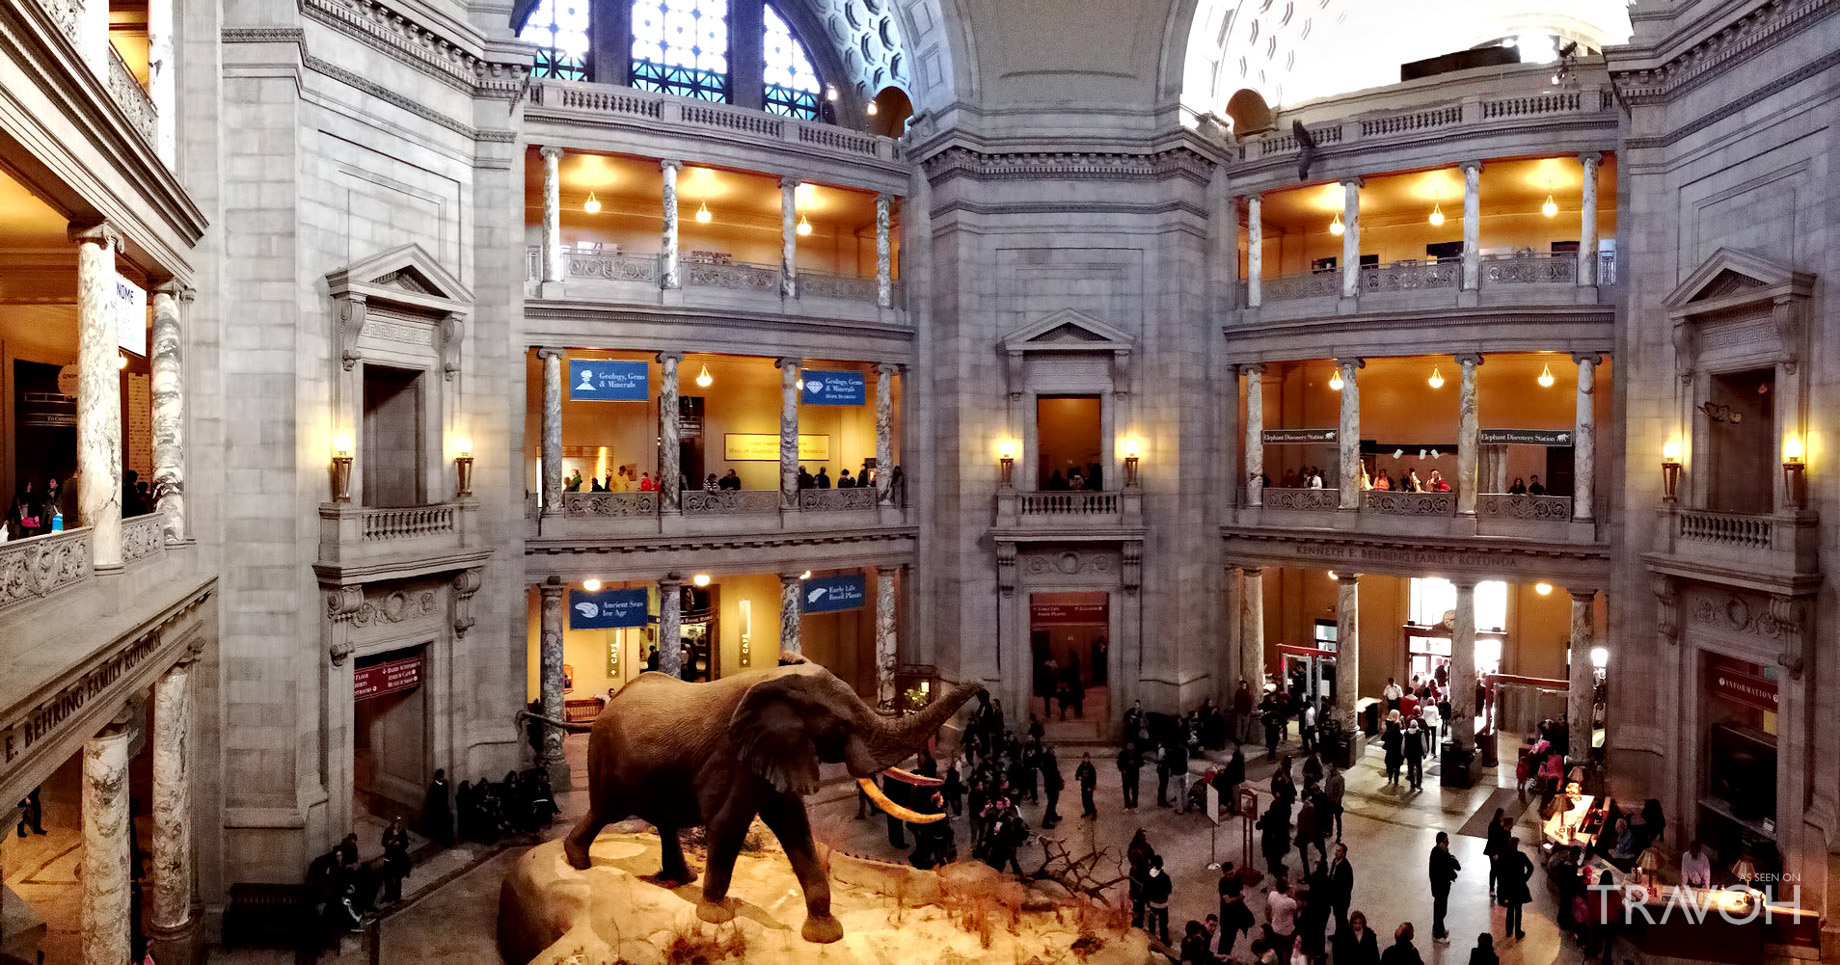 American Museum of Natural History - Central Park West & 79th St, New York, NY, USA